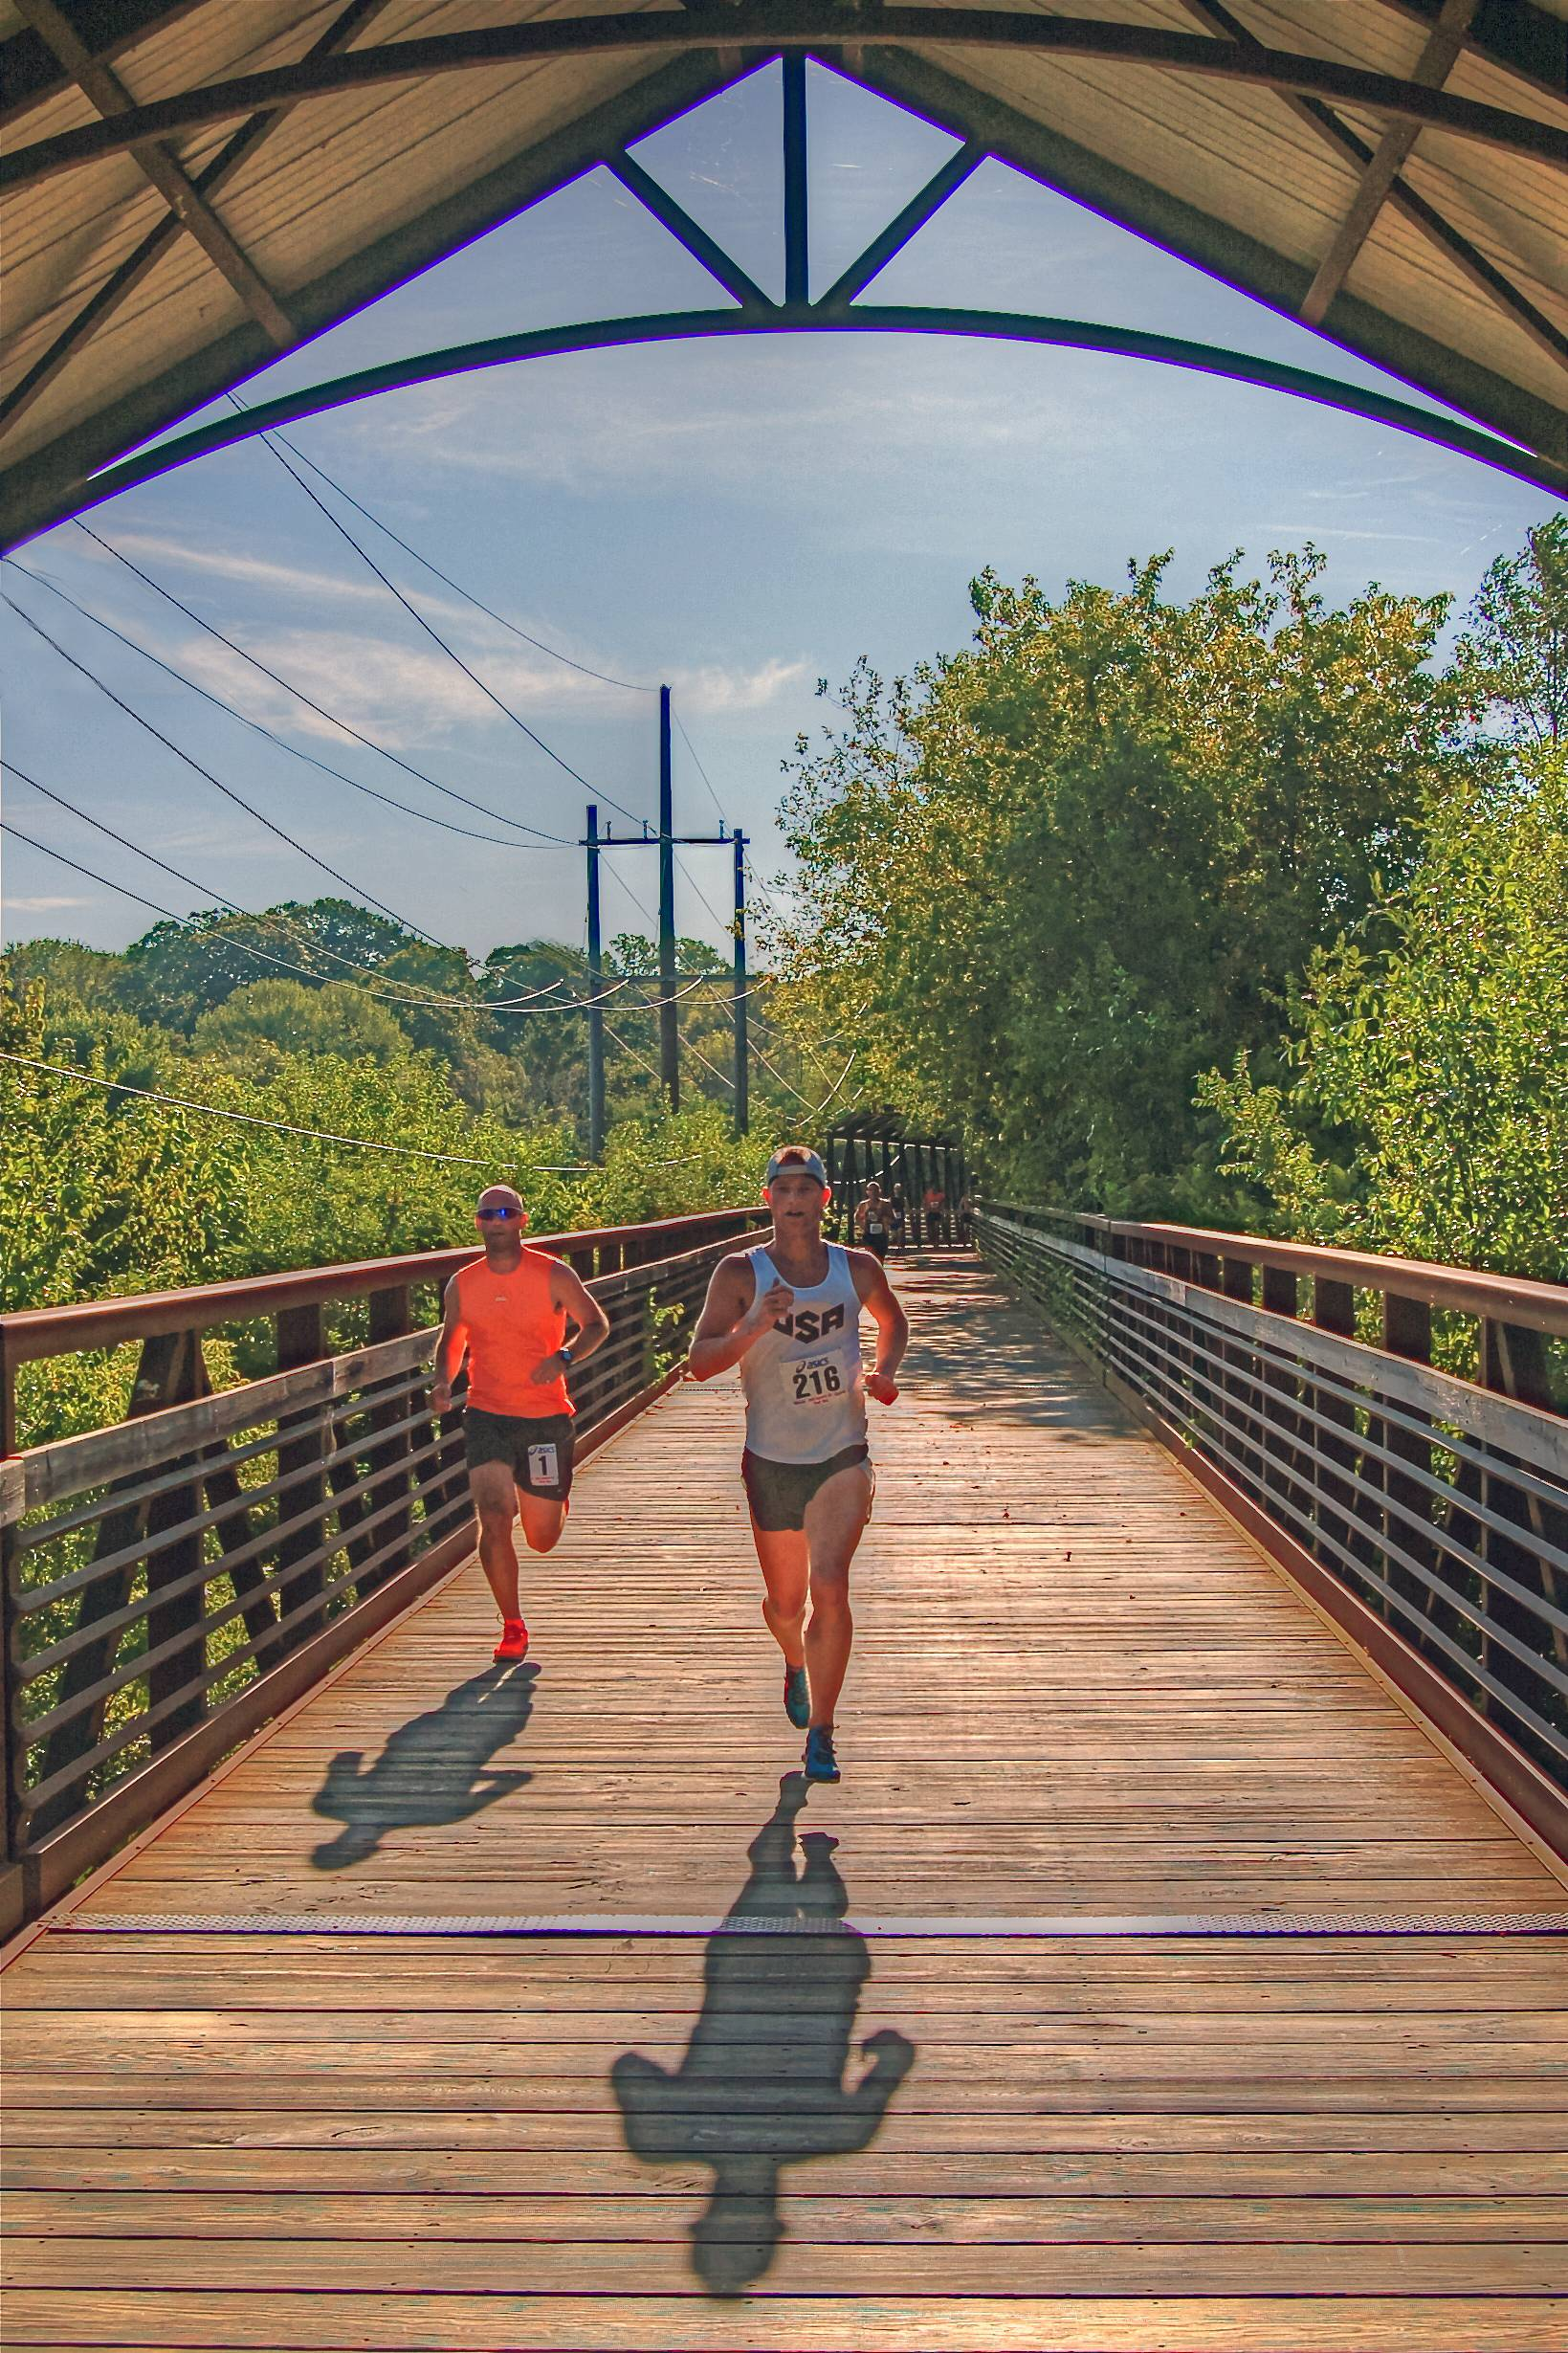 Runners of the Bob Leonard 5K run cross the Fox River bridge as they near the finish line in Pottawatomie Park, St. Charles.